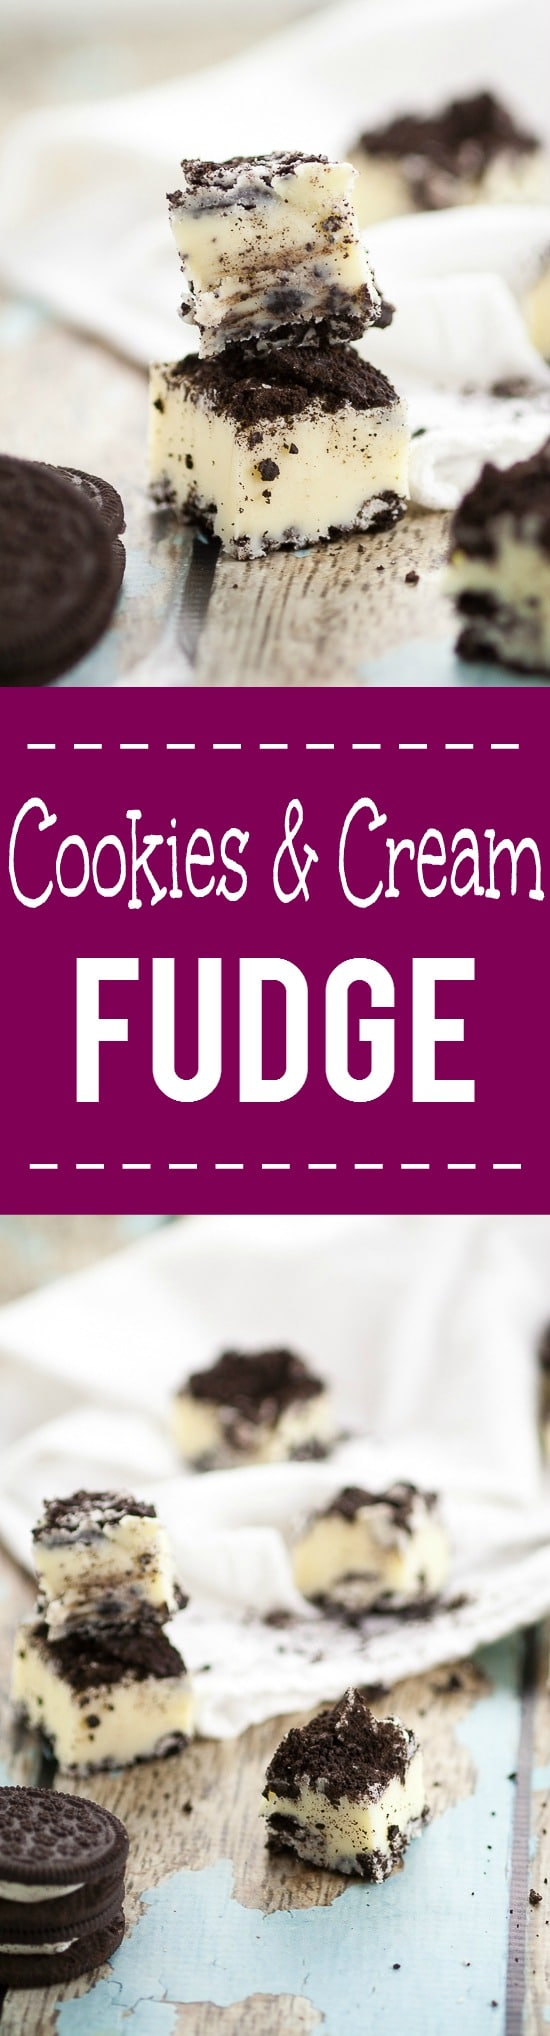 Cookies and Cream Fudge Recipe - Quick and easy Cookies and Cream Fudge recipe with just 5 ingredients for a simple but delicious sweet treat.  Classic and sweet white chocolate fudge with crunchy chocolate cookies for a scrumptious crowd-pleasing favorite.